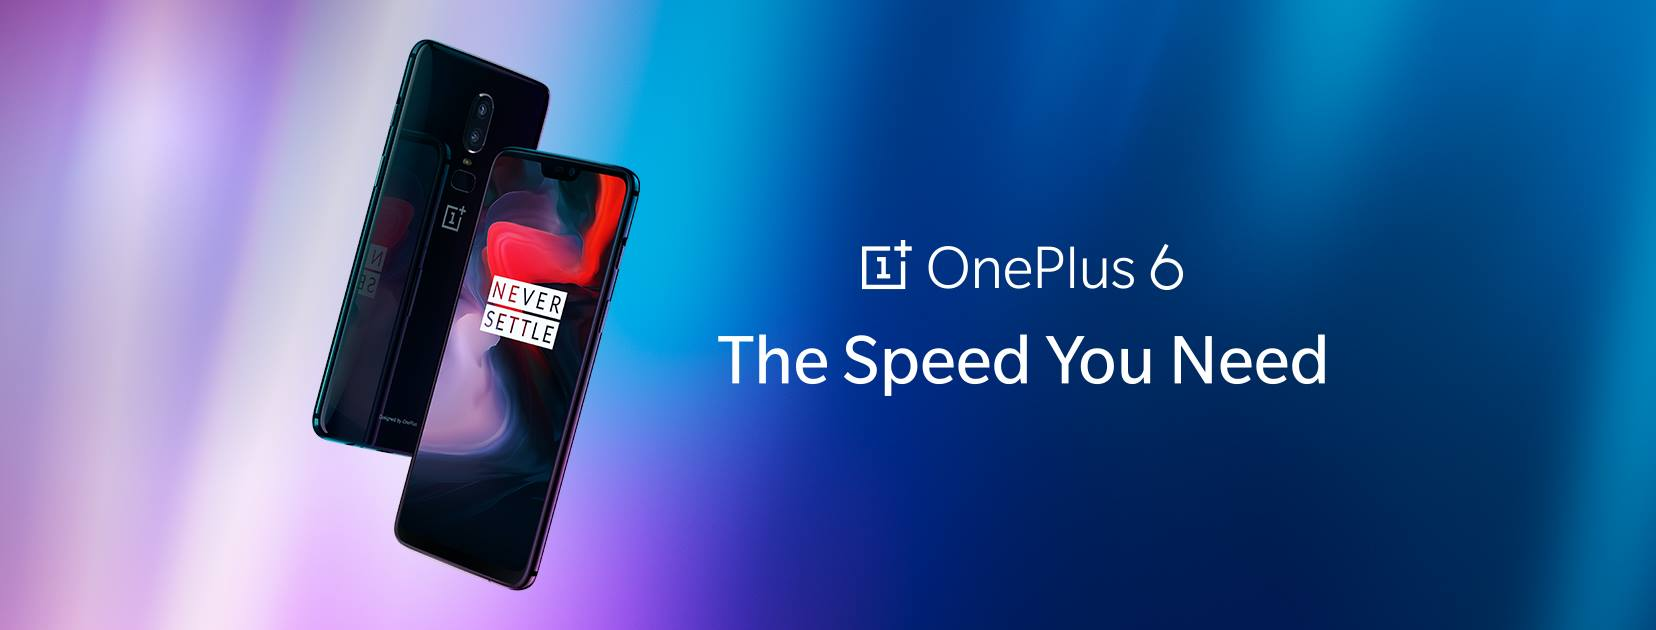 287260 oneplus%206%20on%20souq.com bd90d8 original 1534073076